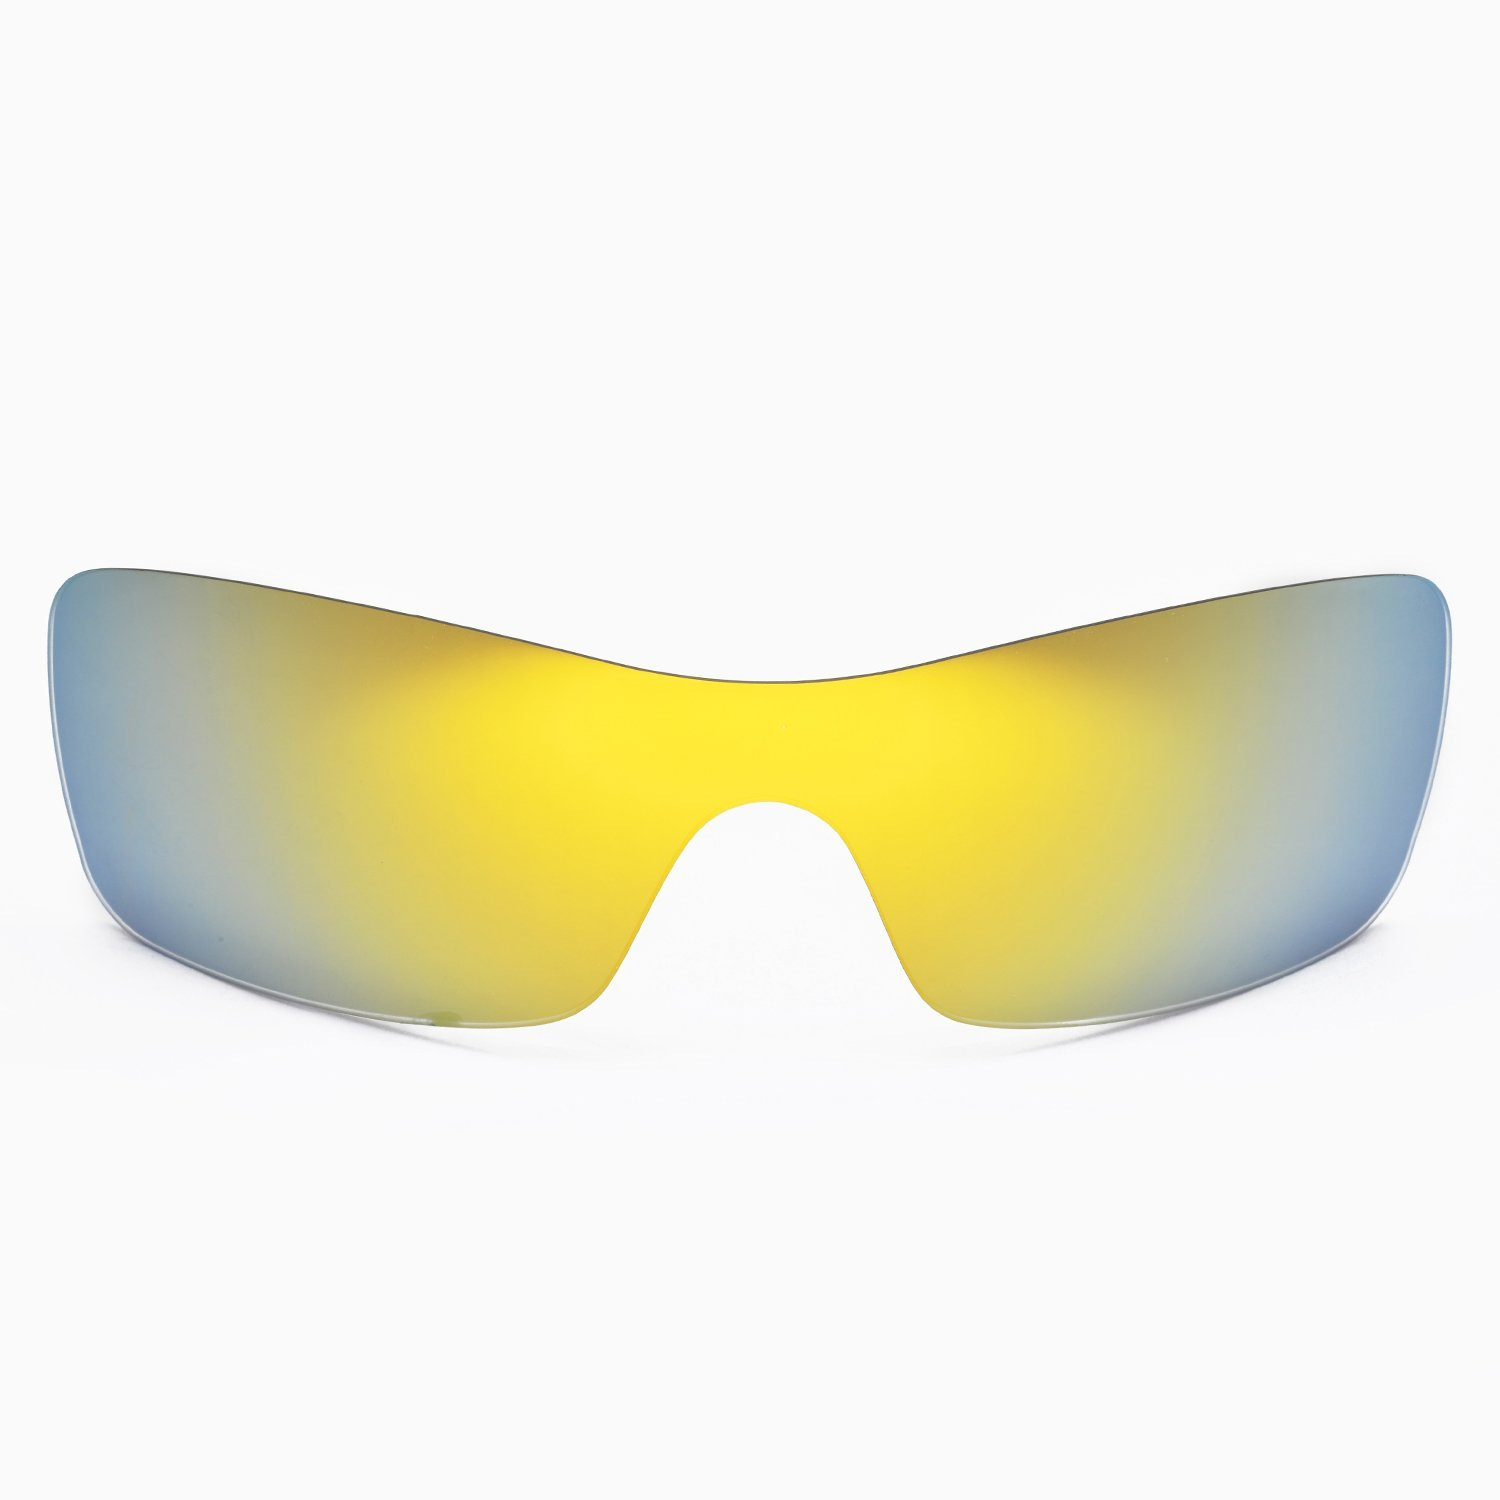 74d34b6e23c Walleva Replacement Lenses for Oakley Batwolf Sunglasses - Multiple Options  (24K Gold Mirror Coated - Polarized)  Amazon.co.uk  Clothing